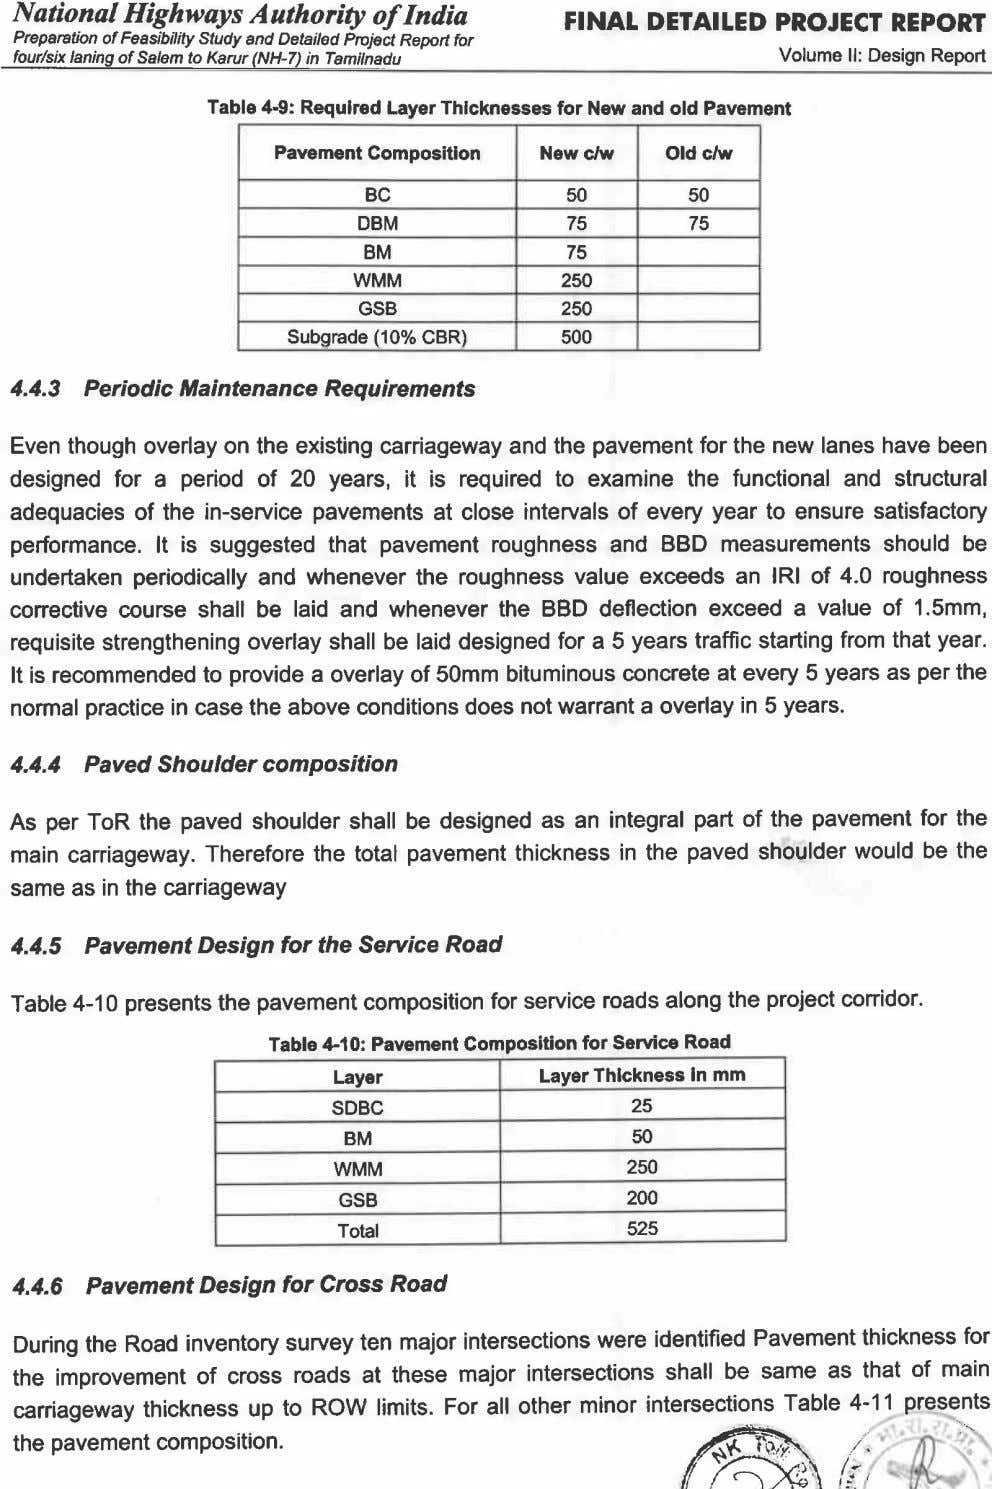 National Highways Authority of India FINAL DETAILED PROJECT REPORT Preparation of Feasibility Sfudy and Detailed